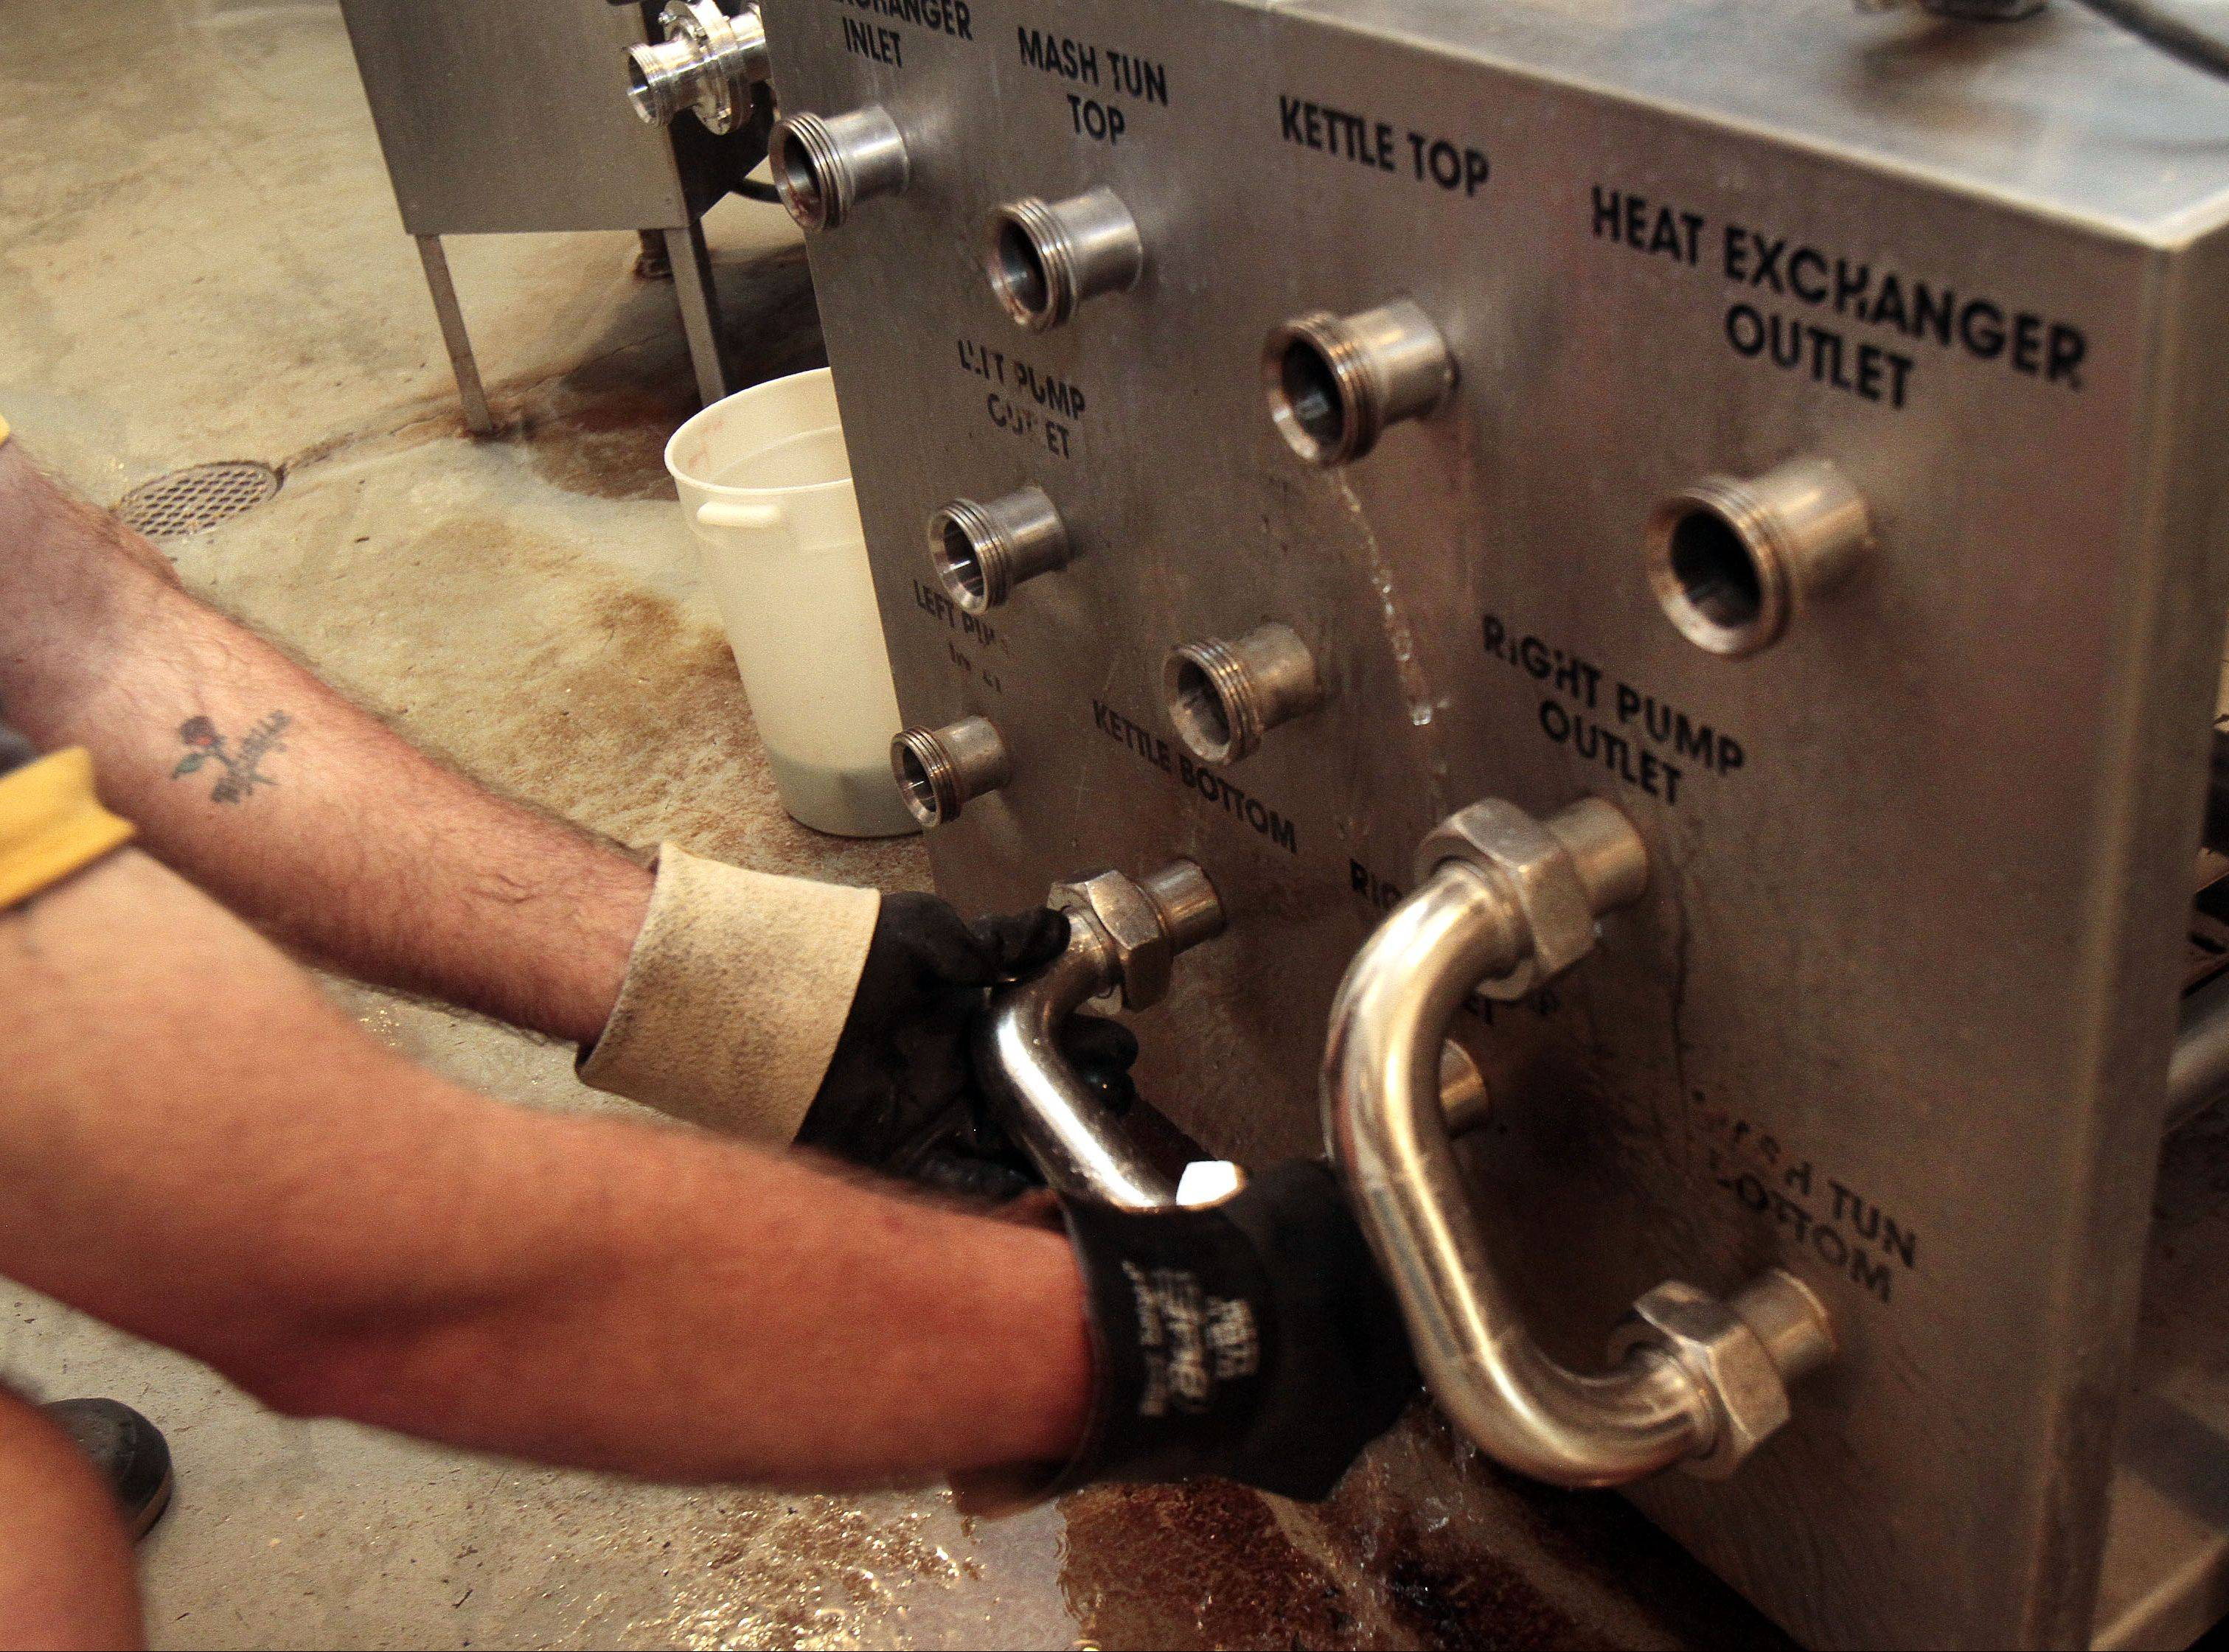 At left, Browne checks the mash tub with a flashlight where the brewing process begins. Above, a heat exchanger is used to cool down the wort before the yeast is added.